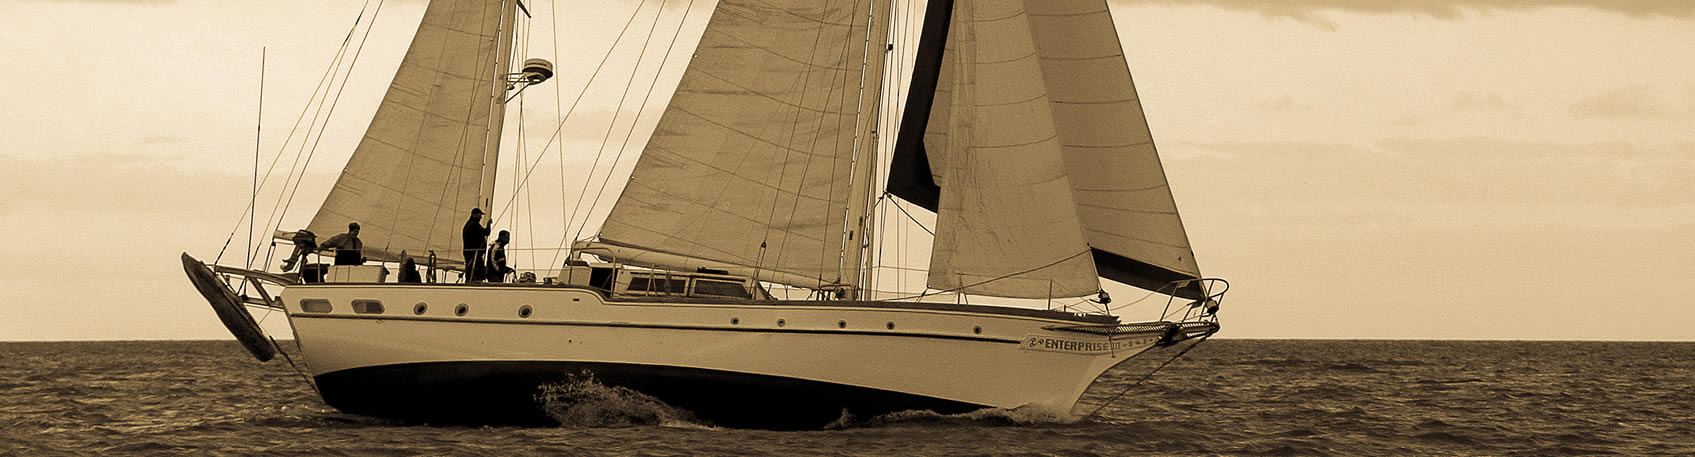 sail-sepia-home